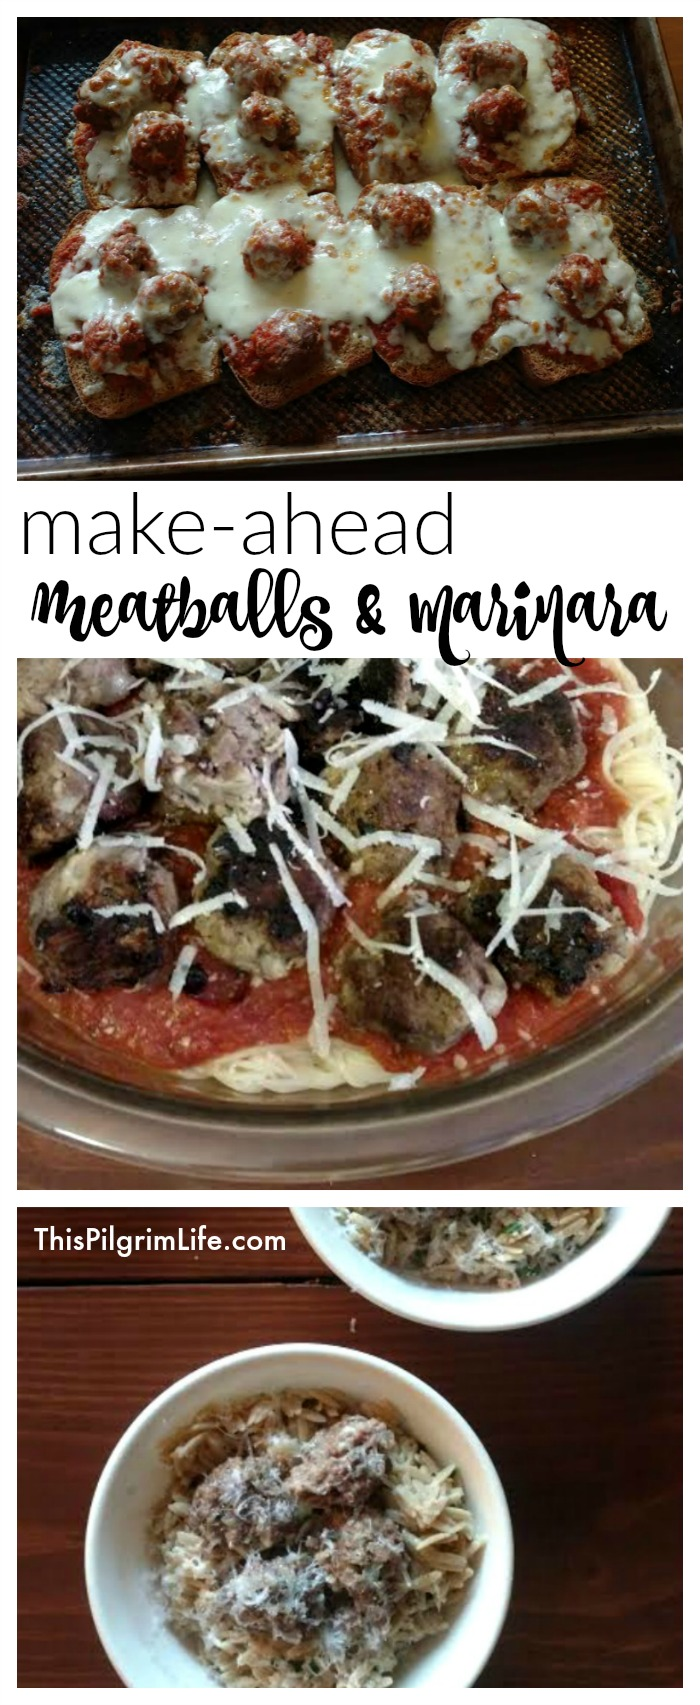 Homemade meatballs and marinara sauce is a lot more manageable when you make them in large batches and freeze for later! Check out these easy recipes for AMAZING make-ahead meatballs and marinara sauce, as well as ideas for how to enjoy them!